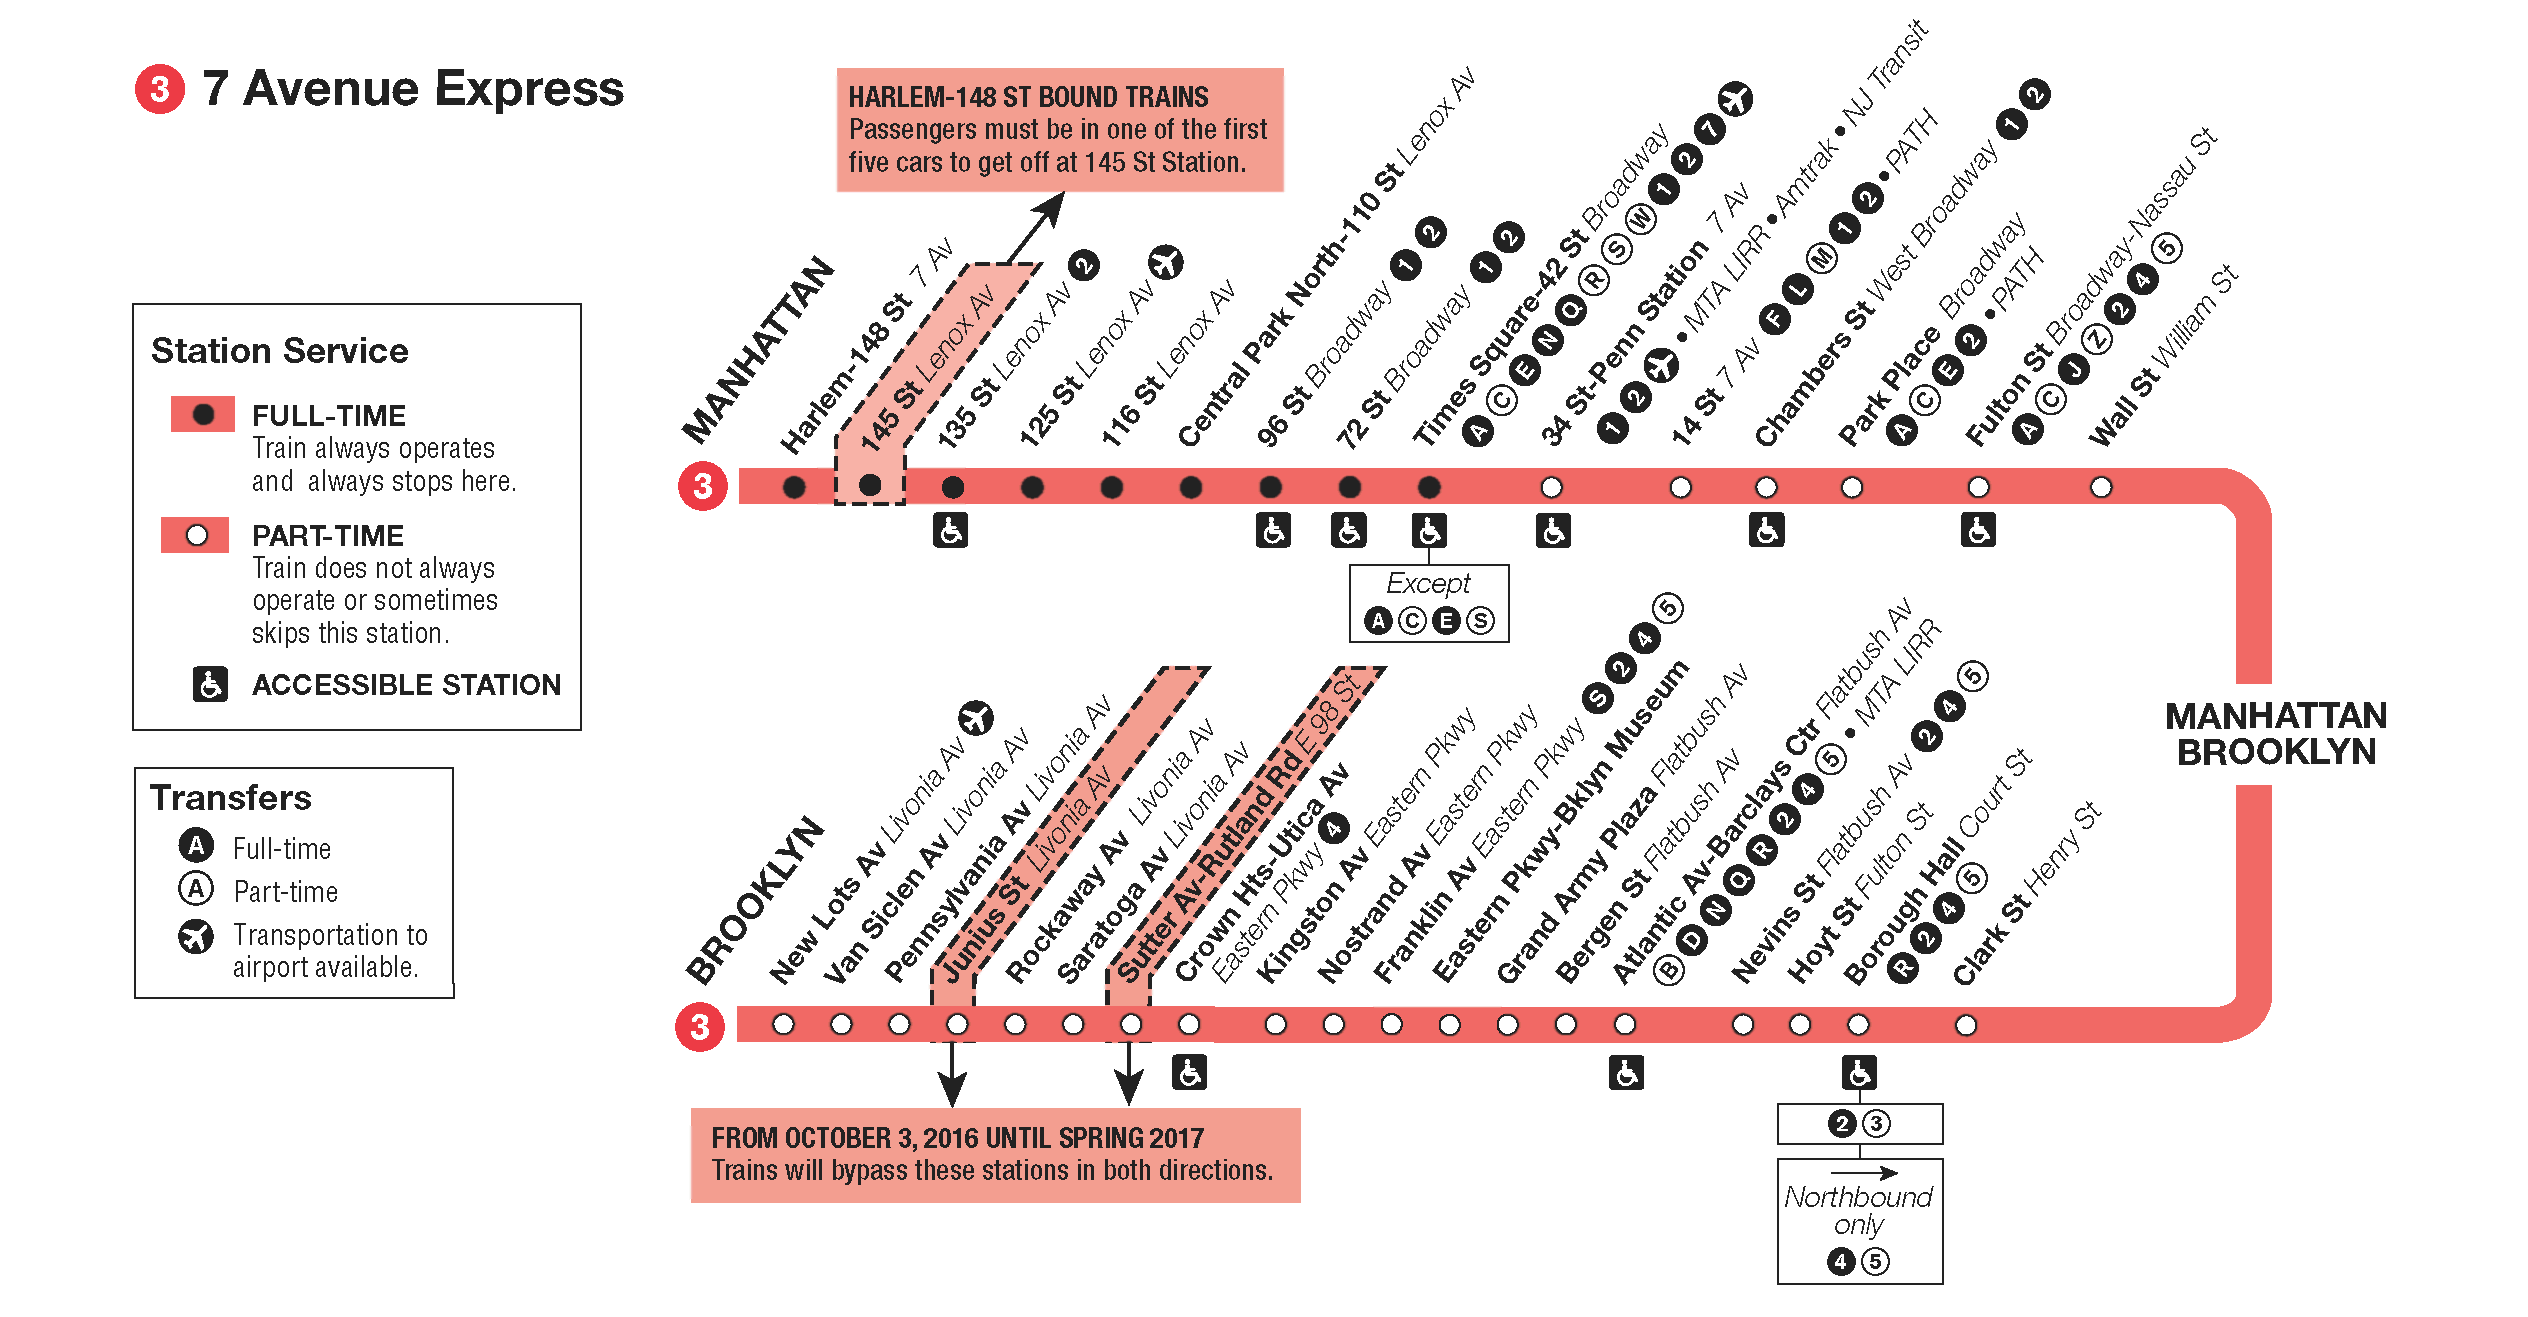 nyc-metro-route-3-7th-avenue-express-map